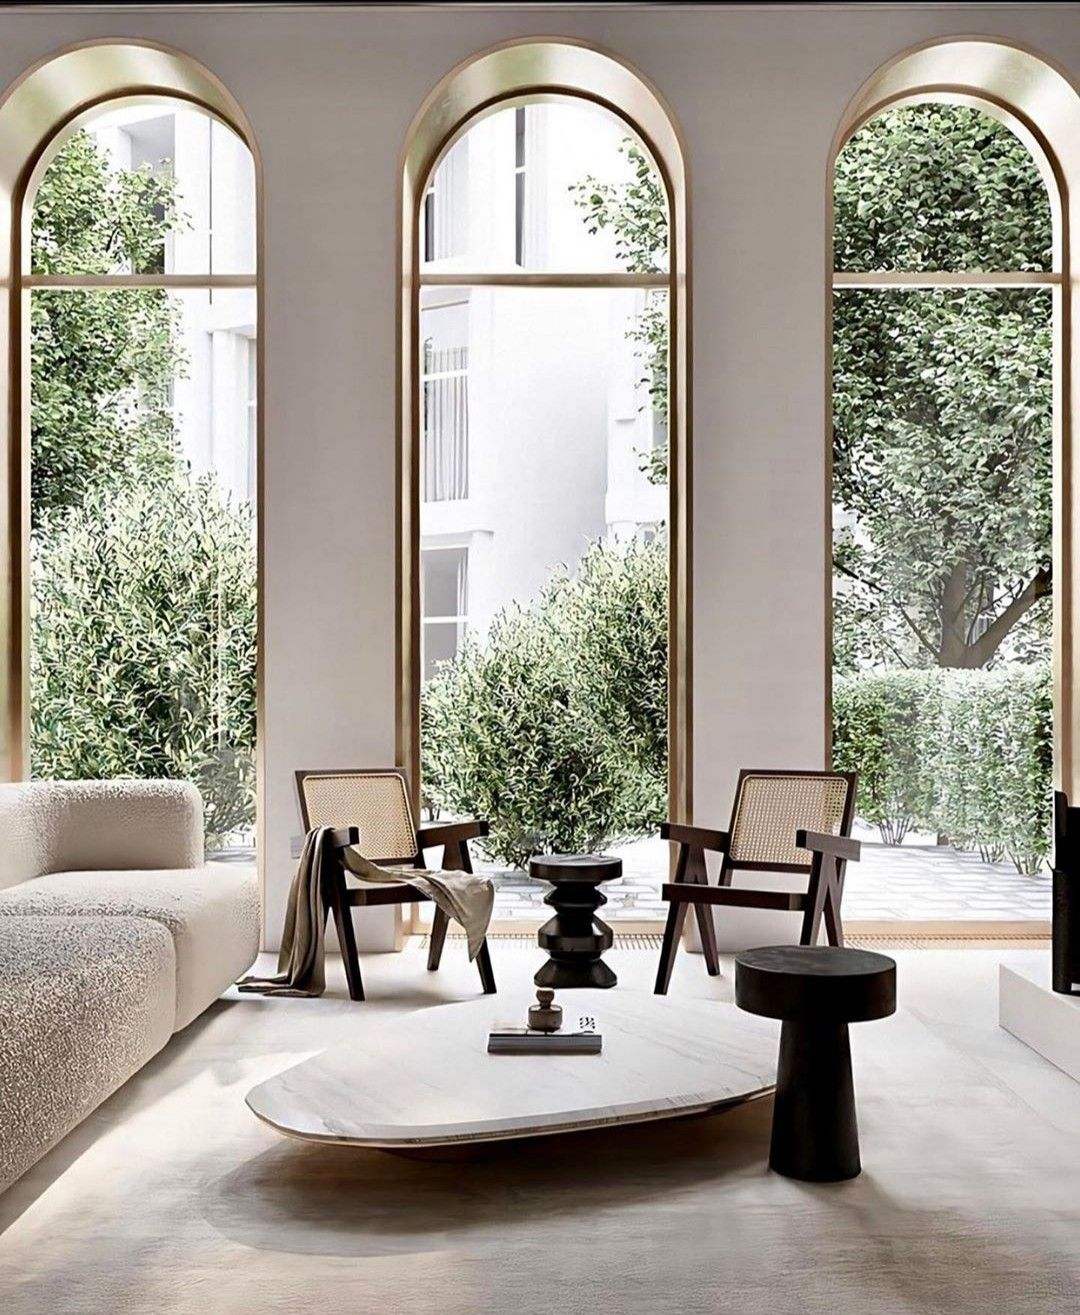 Pin By Cate St Hill On Interior Design Ideas House Interior Home Timeless Decor Living room arch accessories